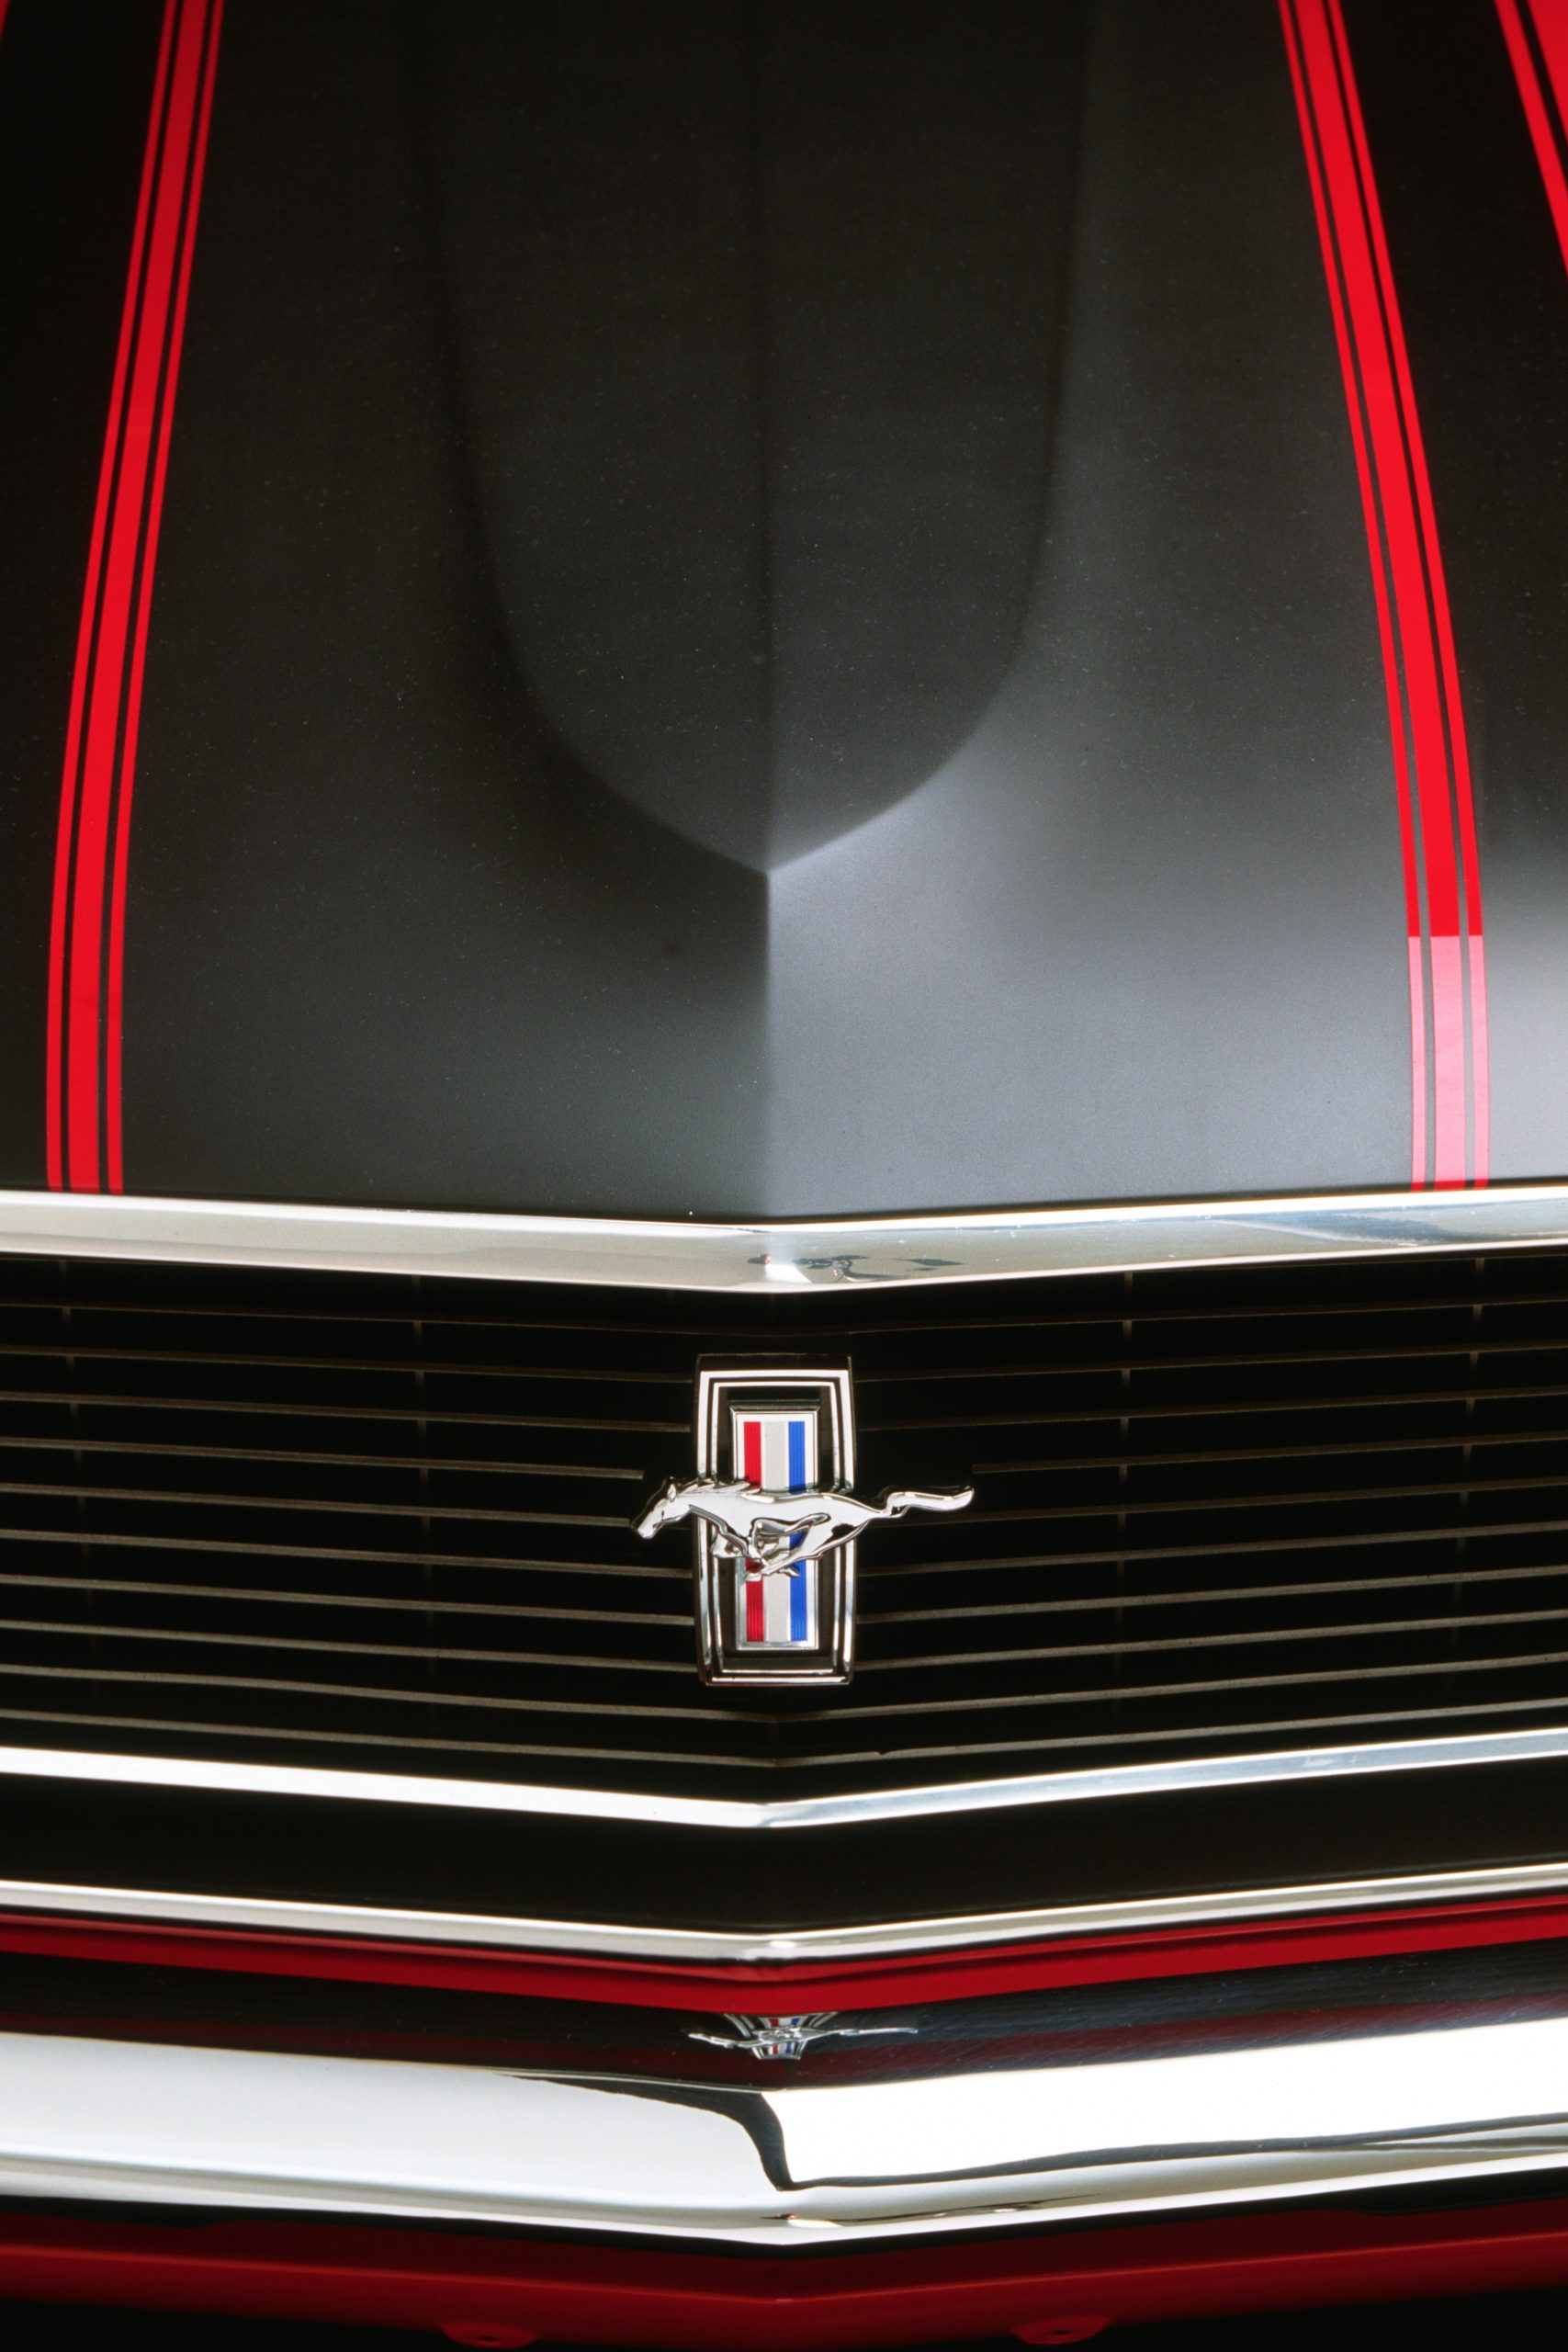 1970 Ford Mustang Mach 1 Grille